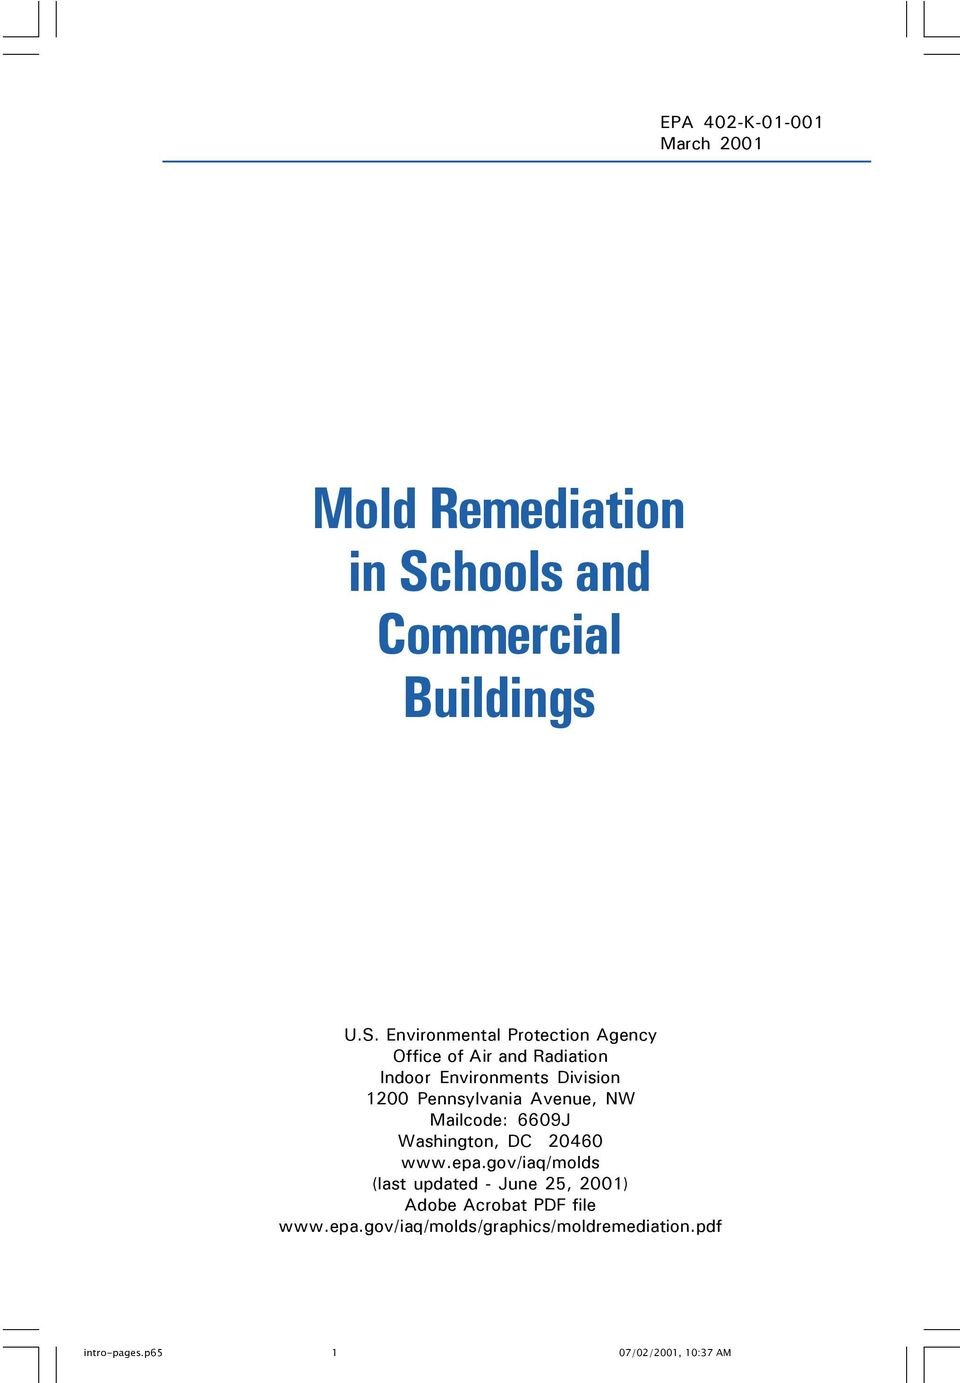 Environmental Protection Agency Office of Air and Radiation Indoor Environments Division 1200